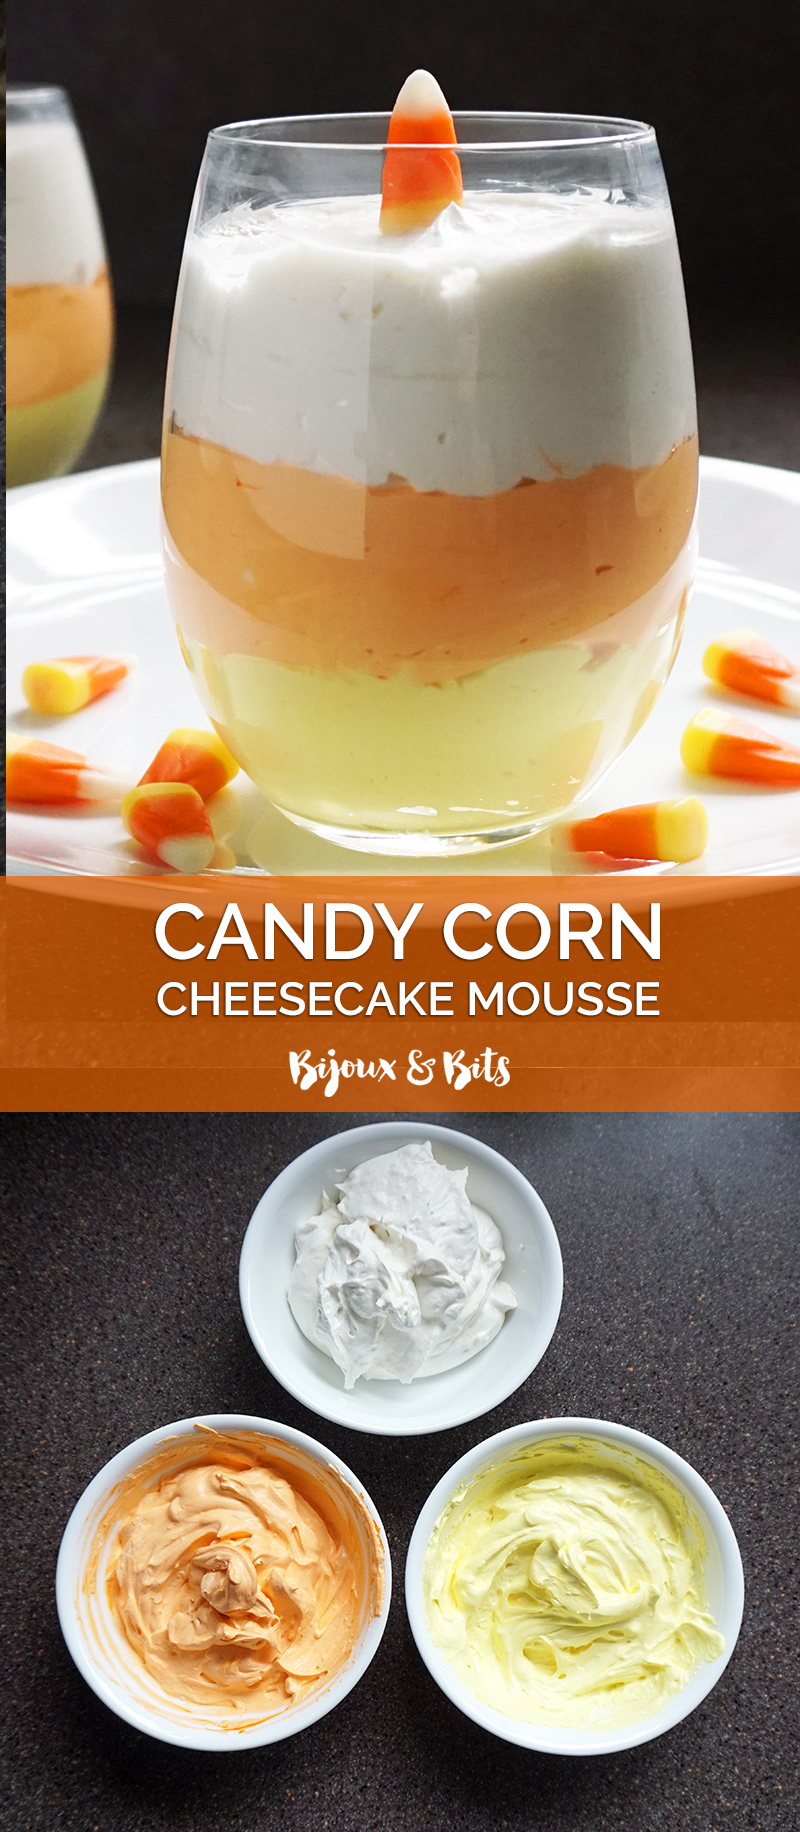 Candy corn cheesecake mousse recipe from @bijouxandbits